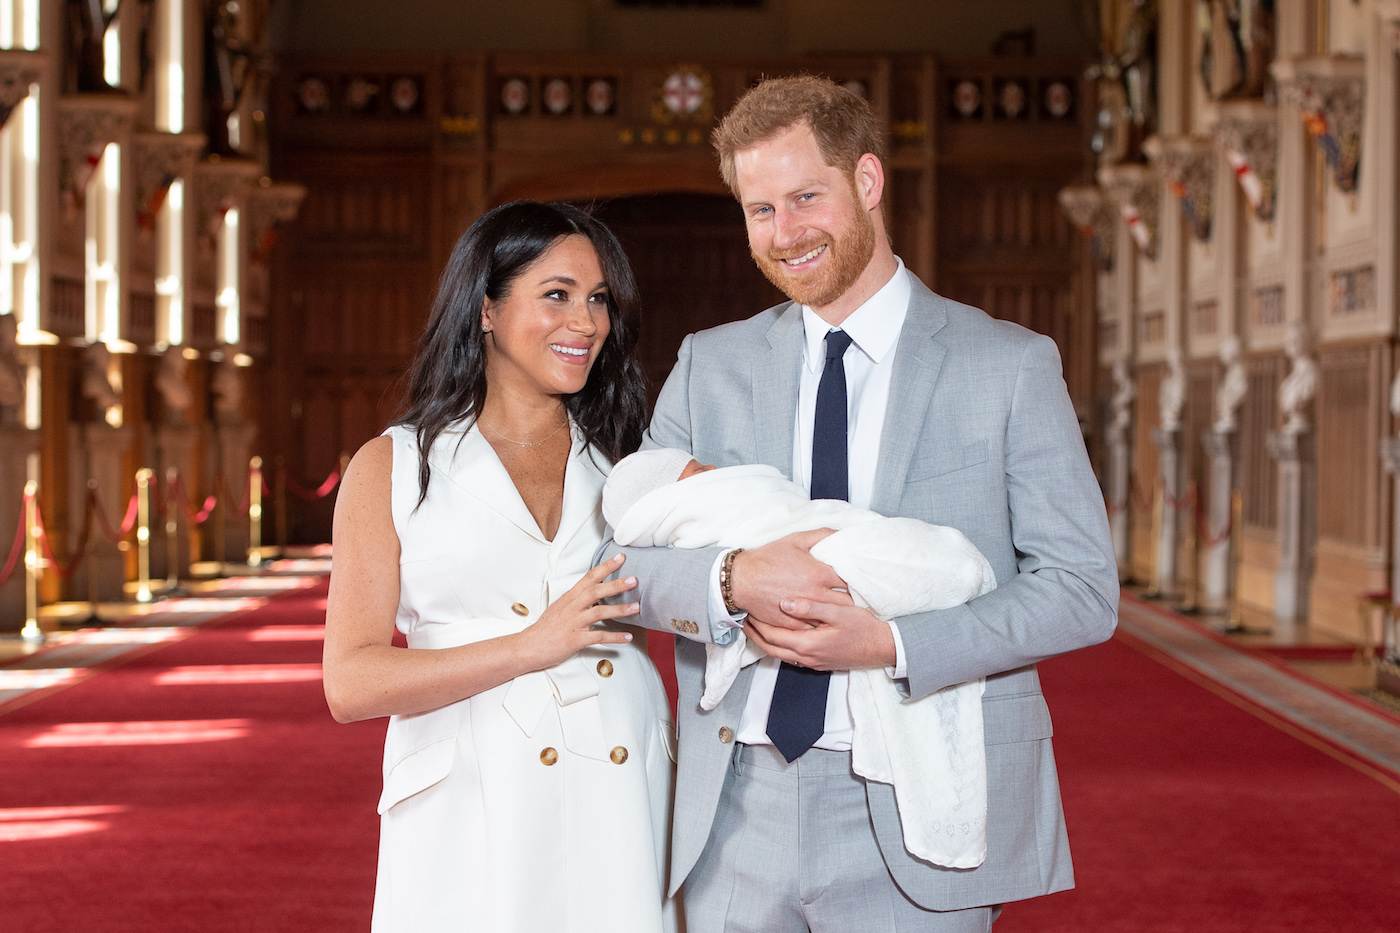 Meghan Markle and Prince Harry pose with newborn son